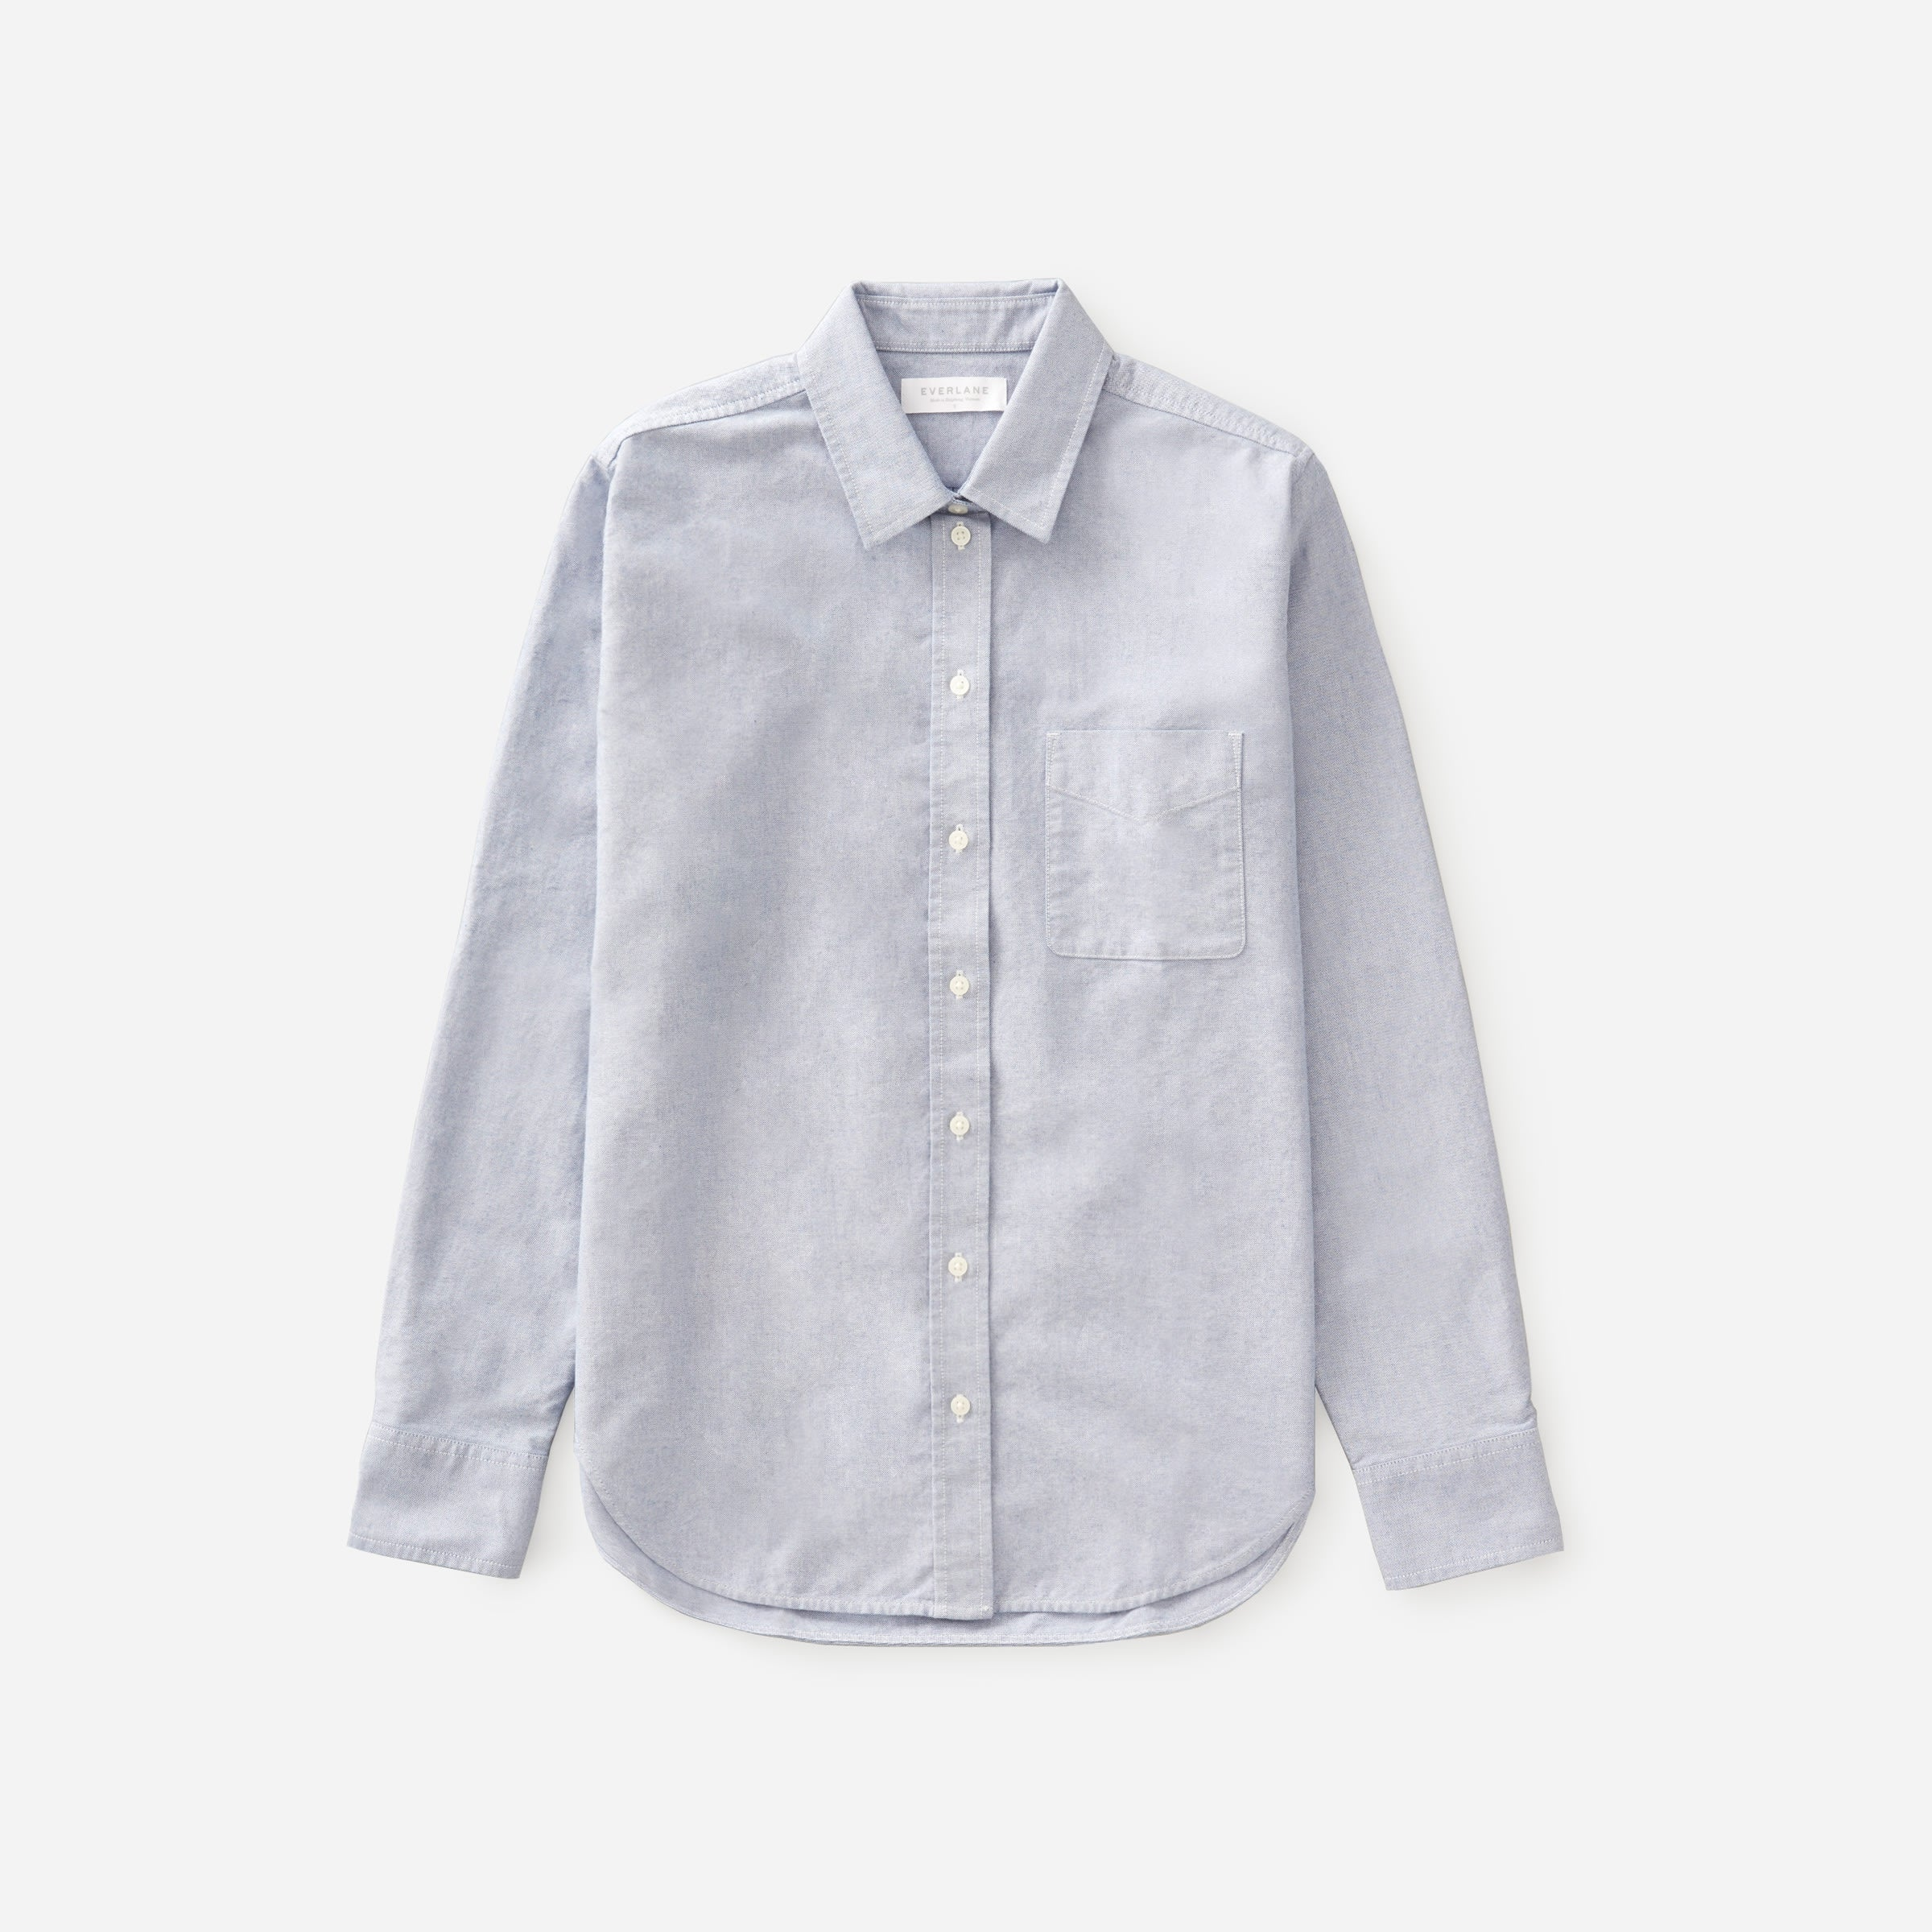 Everlane - Japanese oxford tailored shirt